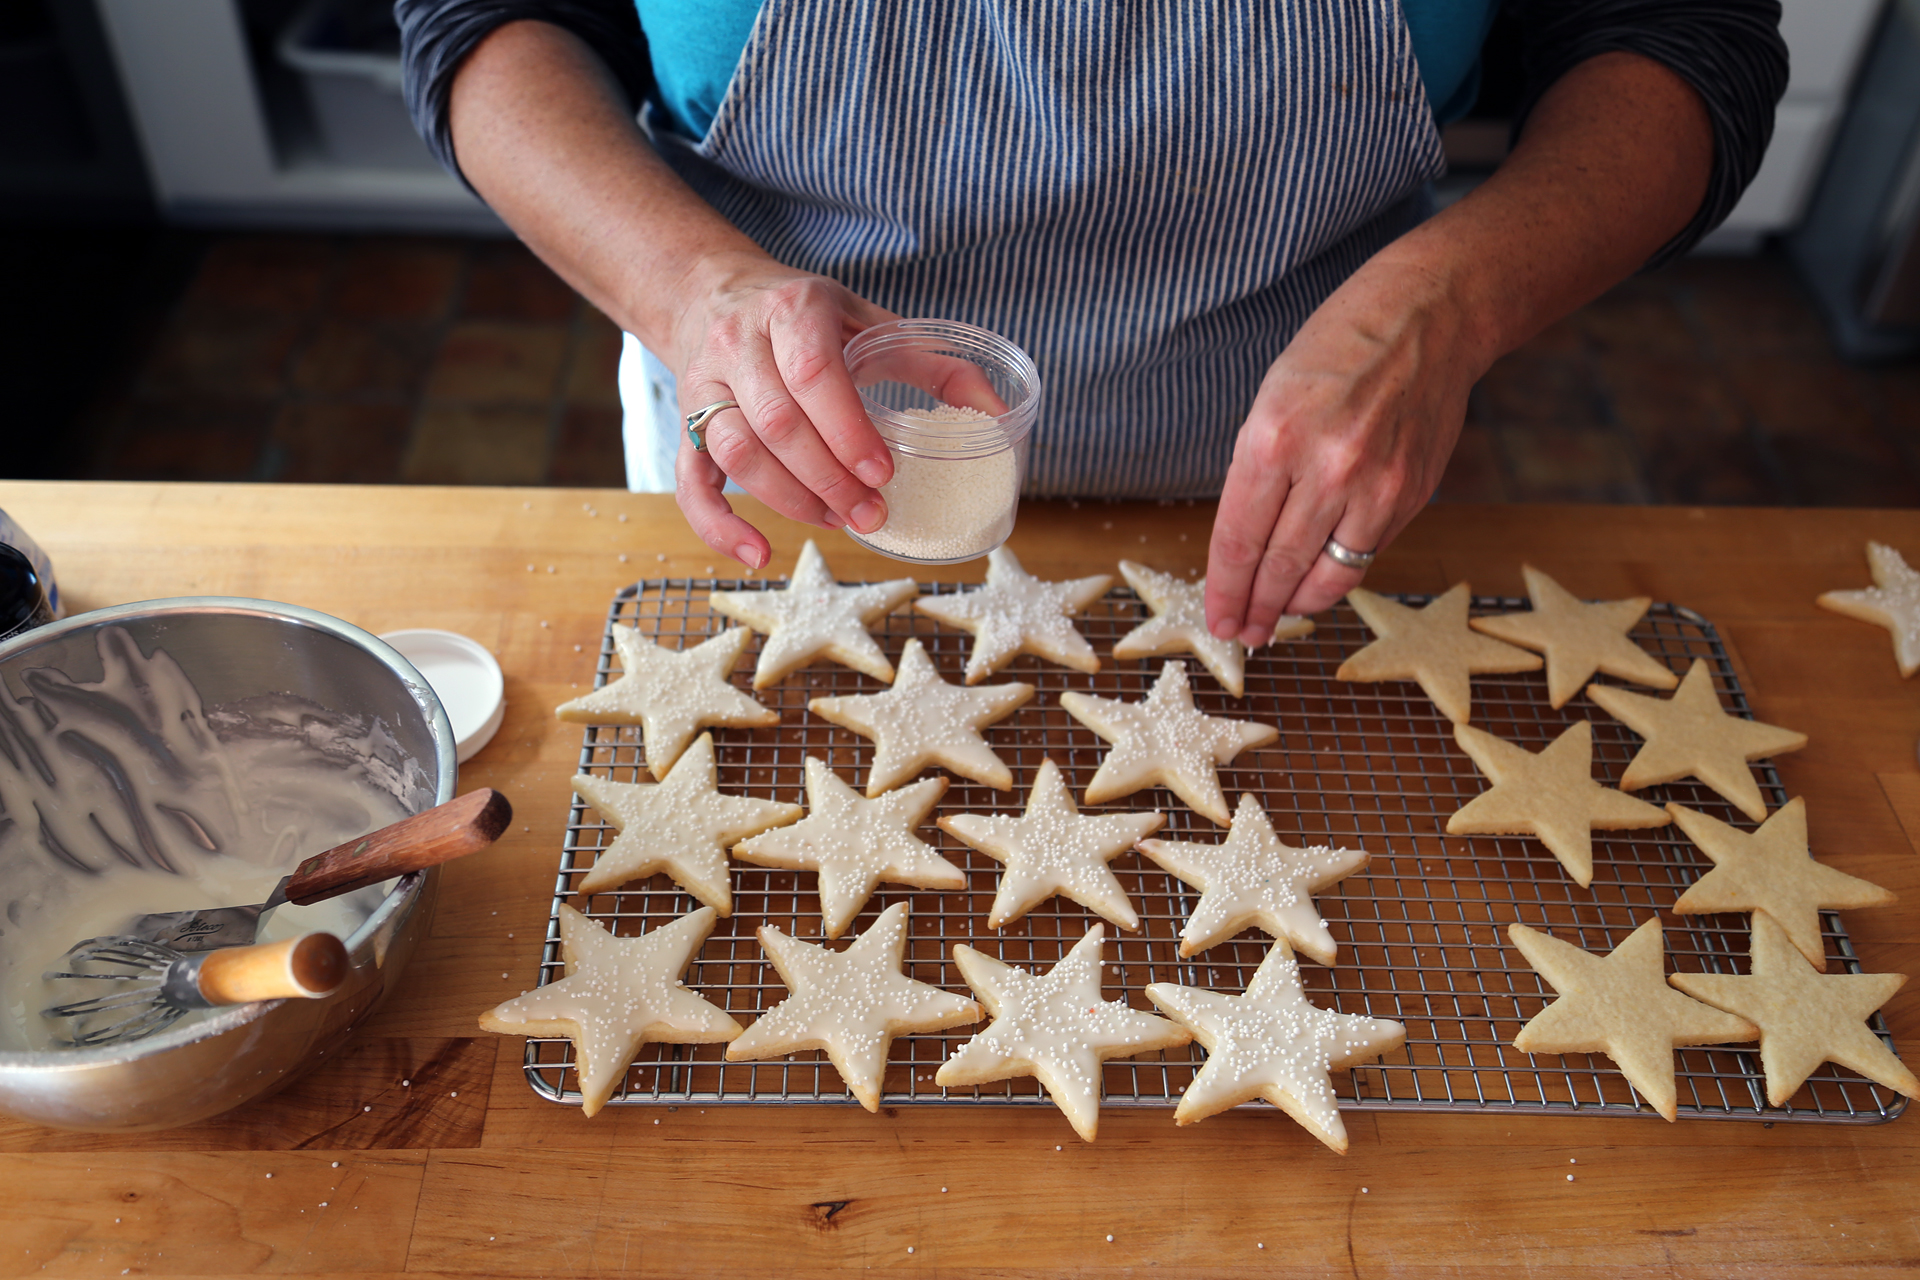 Sprinkle the star cookies with sparkle sugar for decoration and serve.